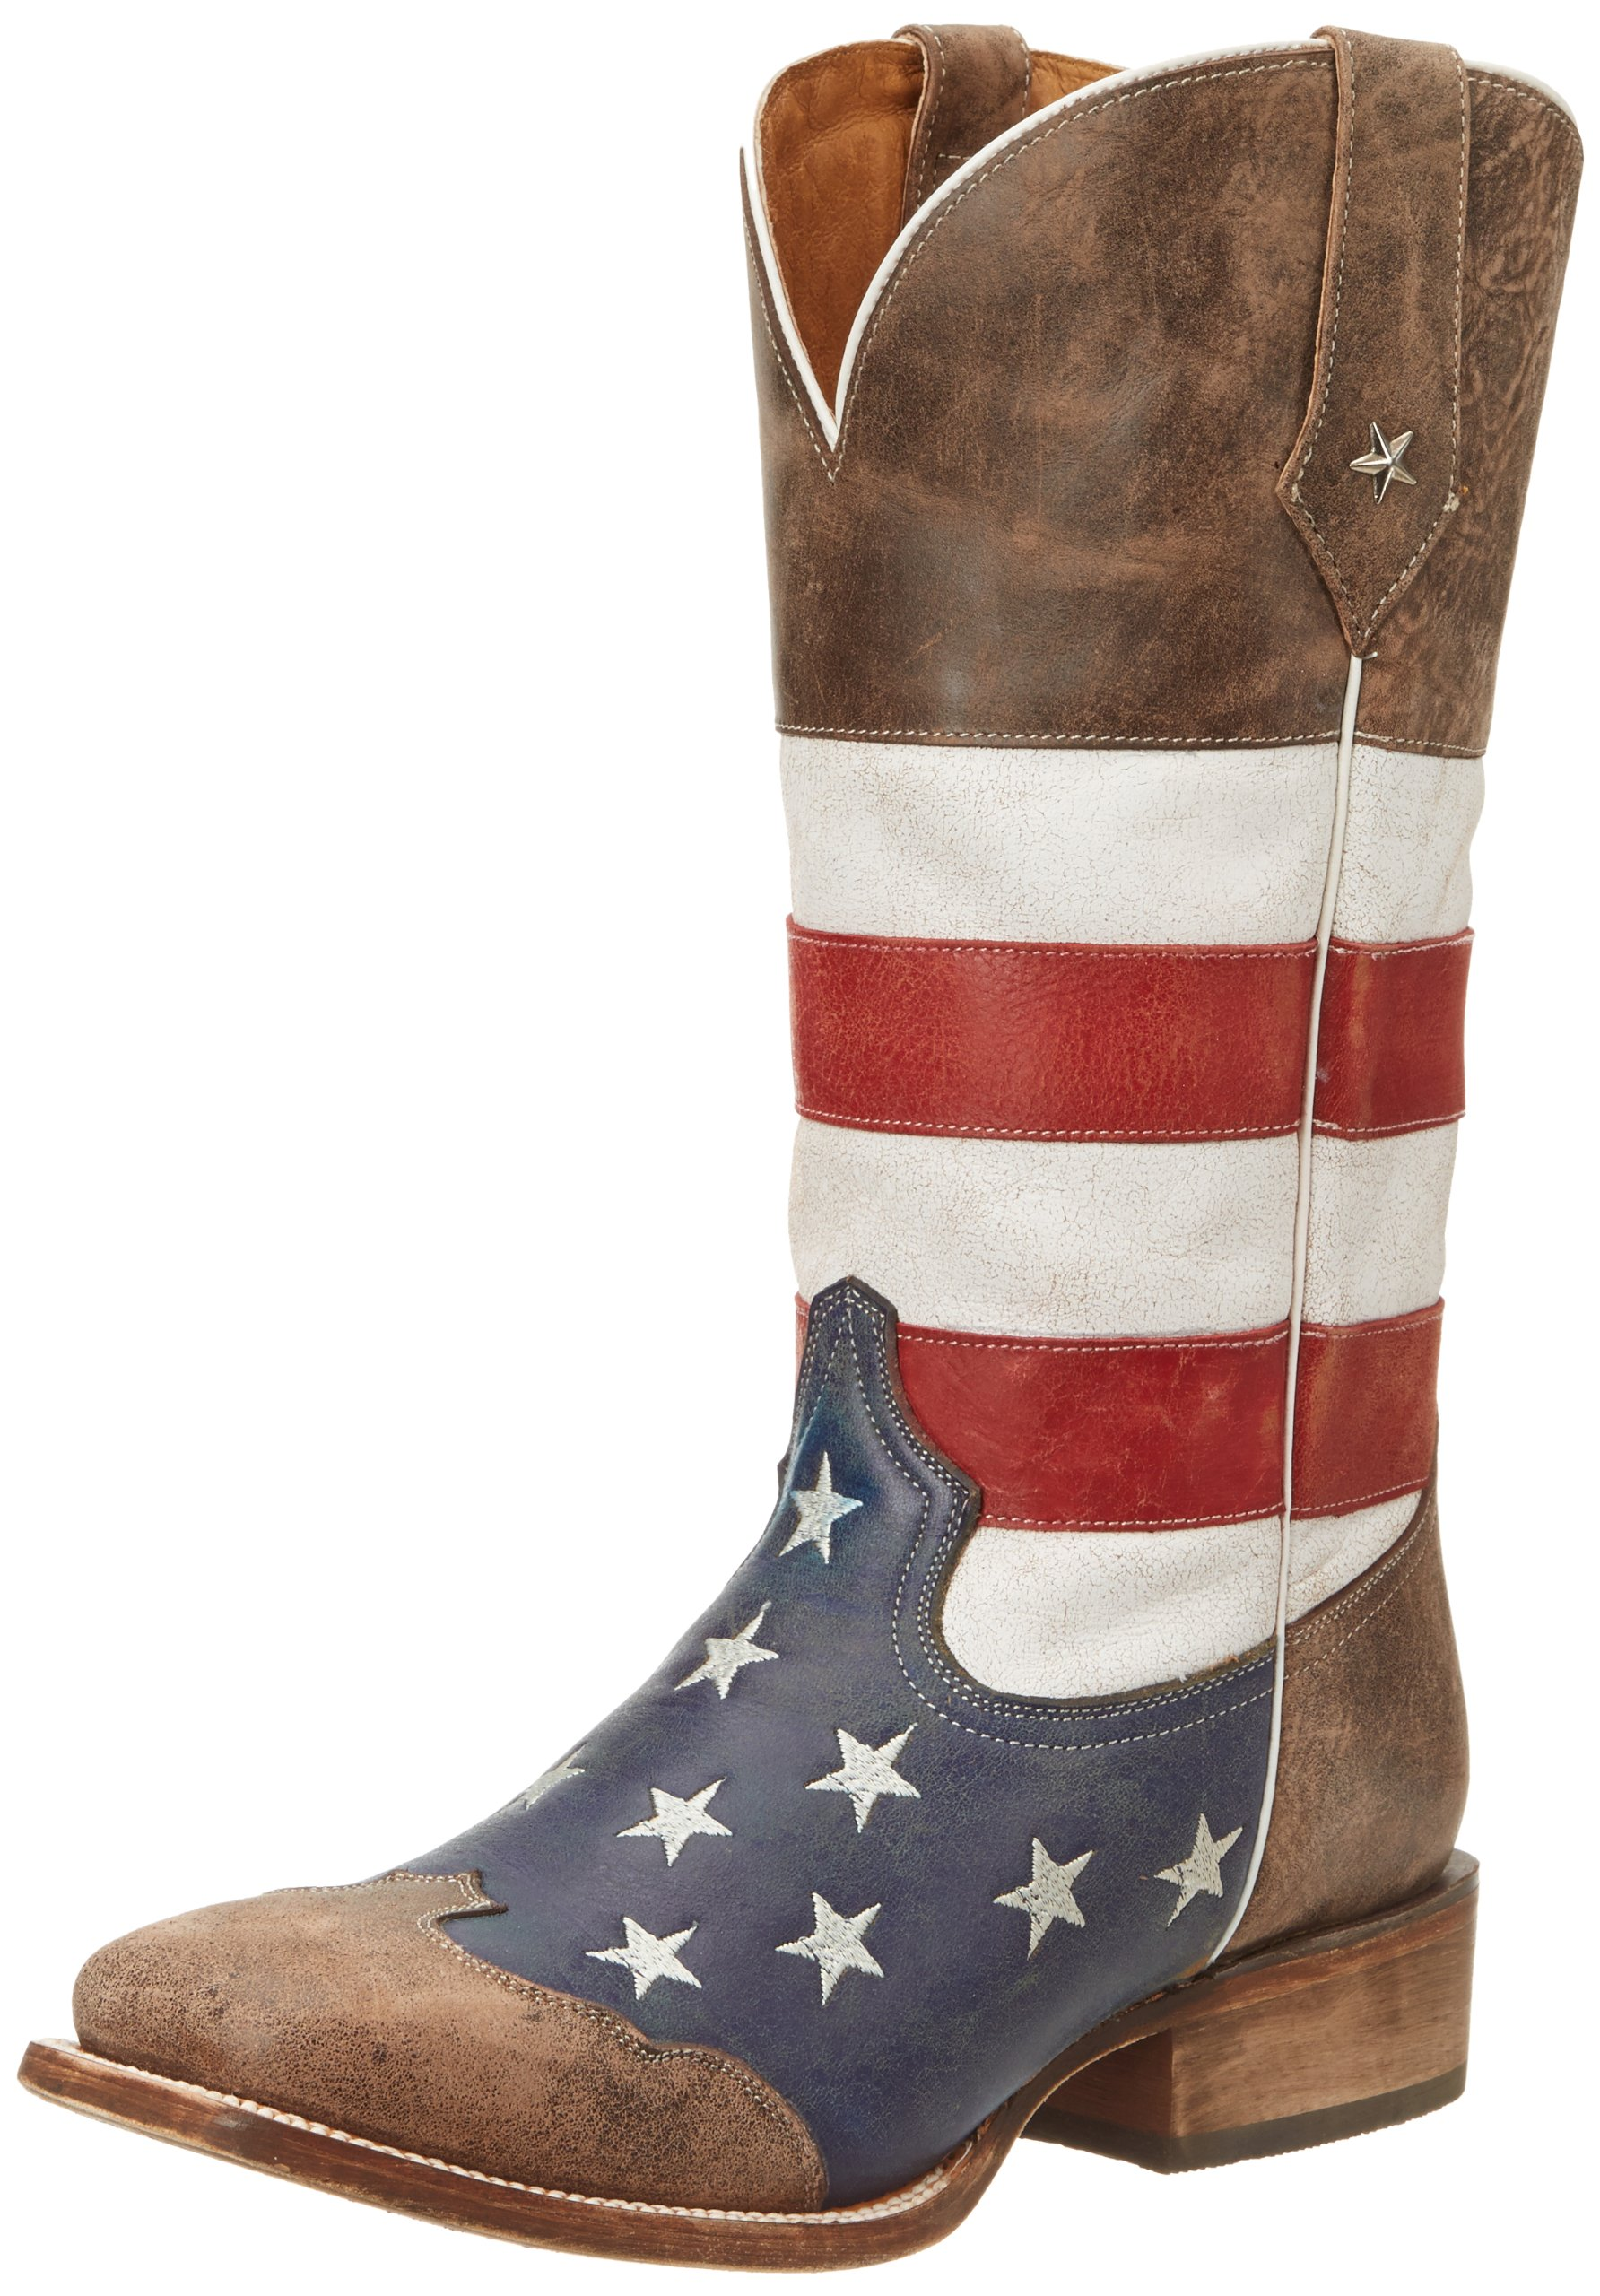 Roper Men's American Flag Square Toe Boot Brown 14 EE - Wide